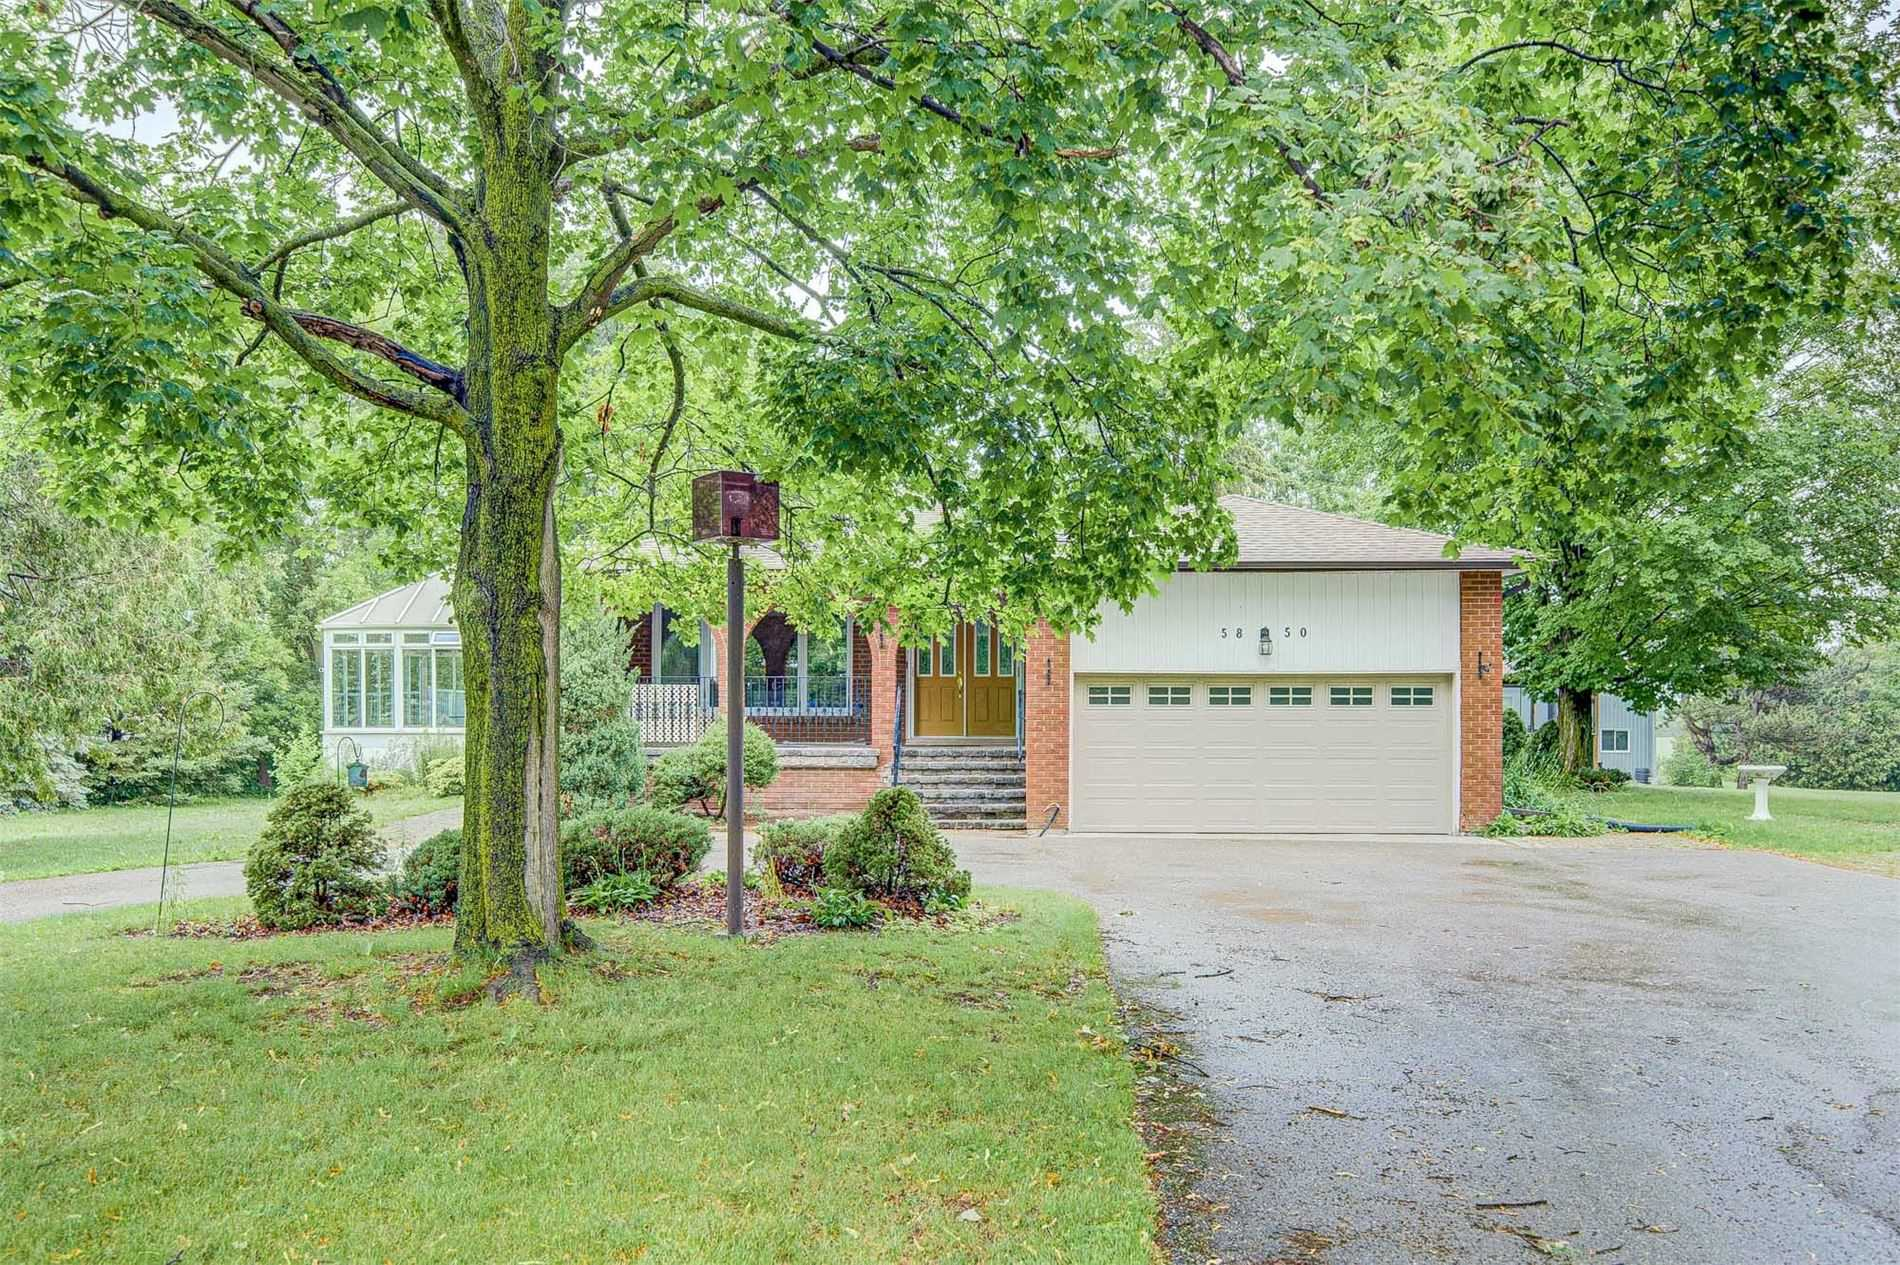 Detached house For Sale In King - 5850 Lloydtown-Aurora Rd, King, Ontario, Canada L0G1T0 , 3 Bedrooms Bedrooms, ,2 BathroomsBathrooms,Detached,For Sale,Lloydtown-Aurora